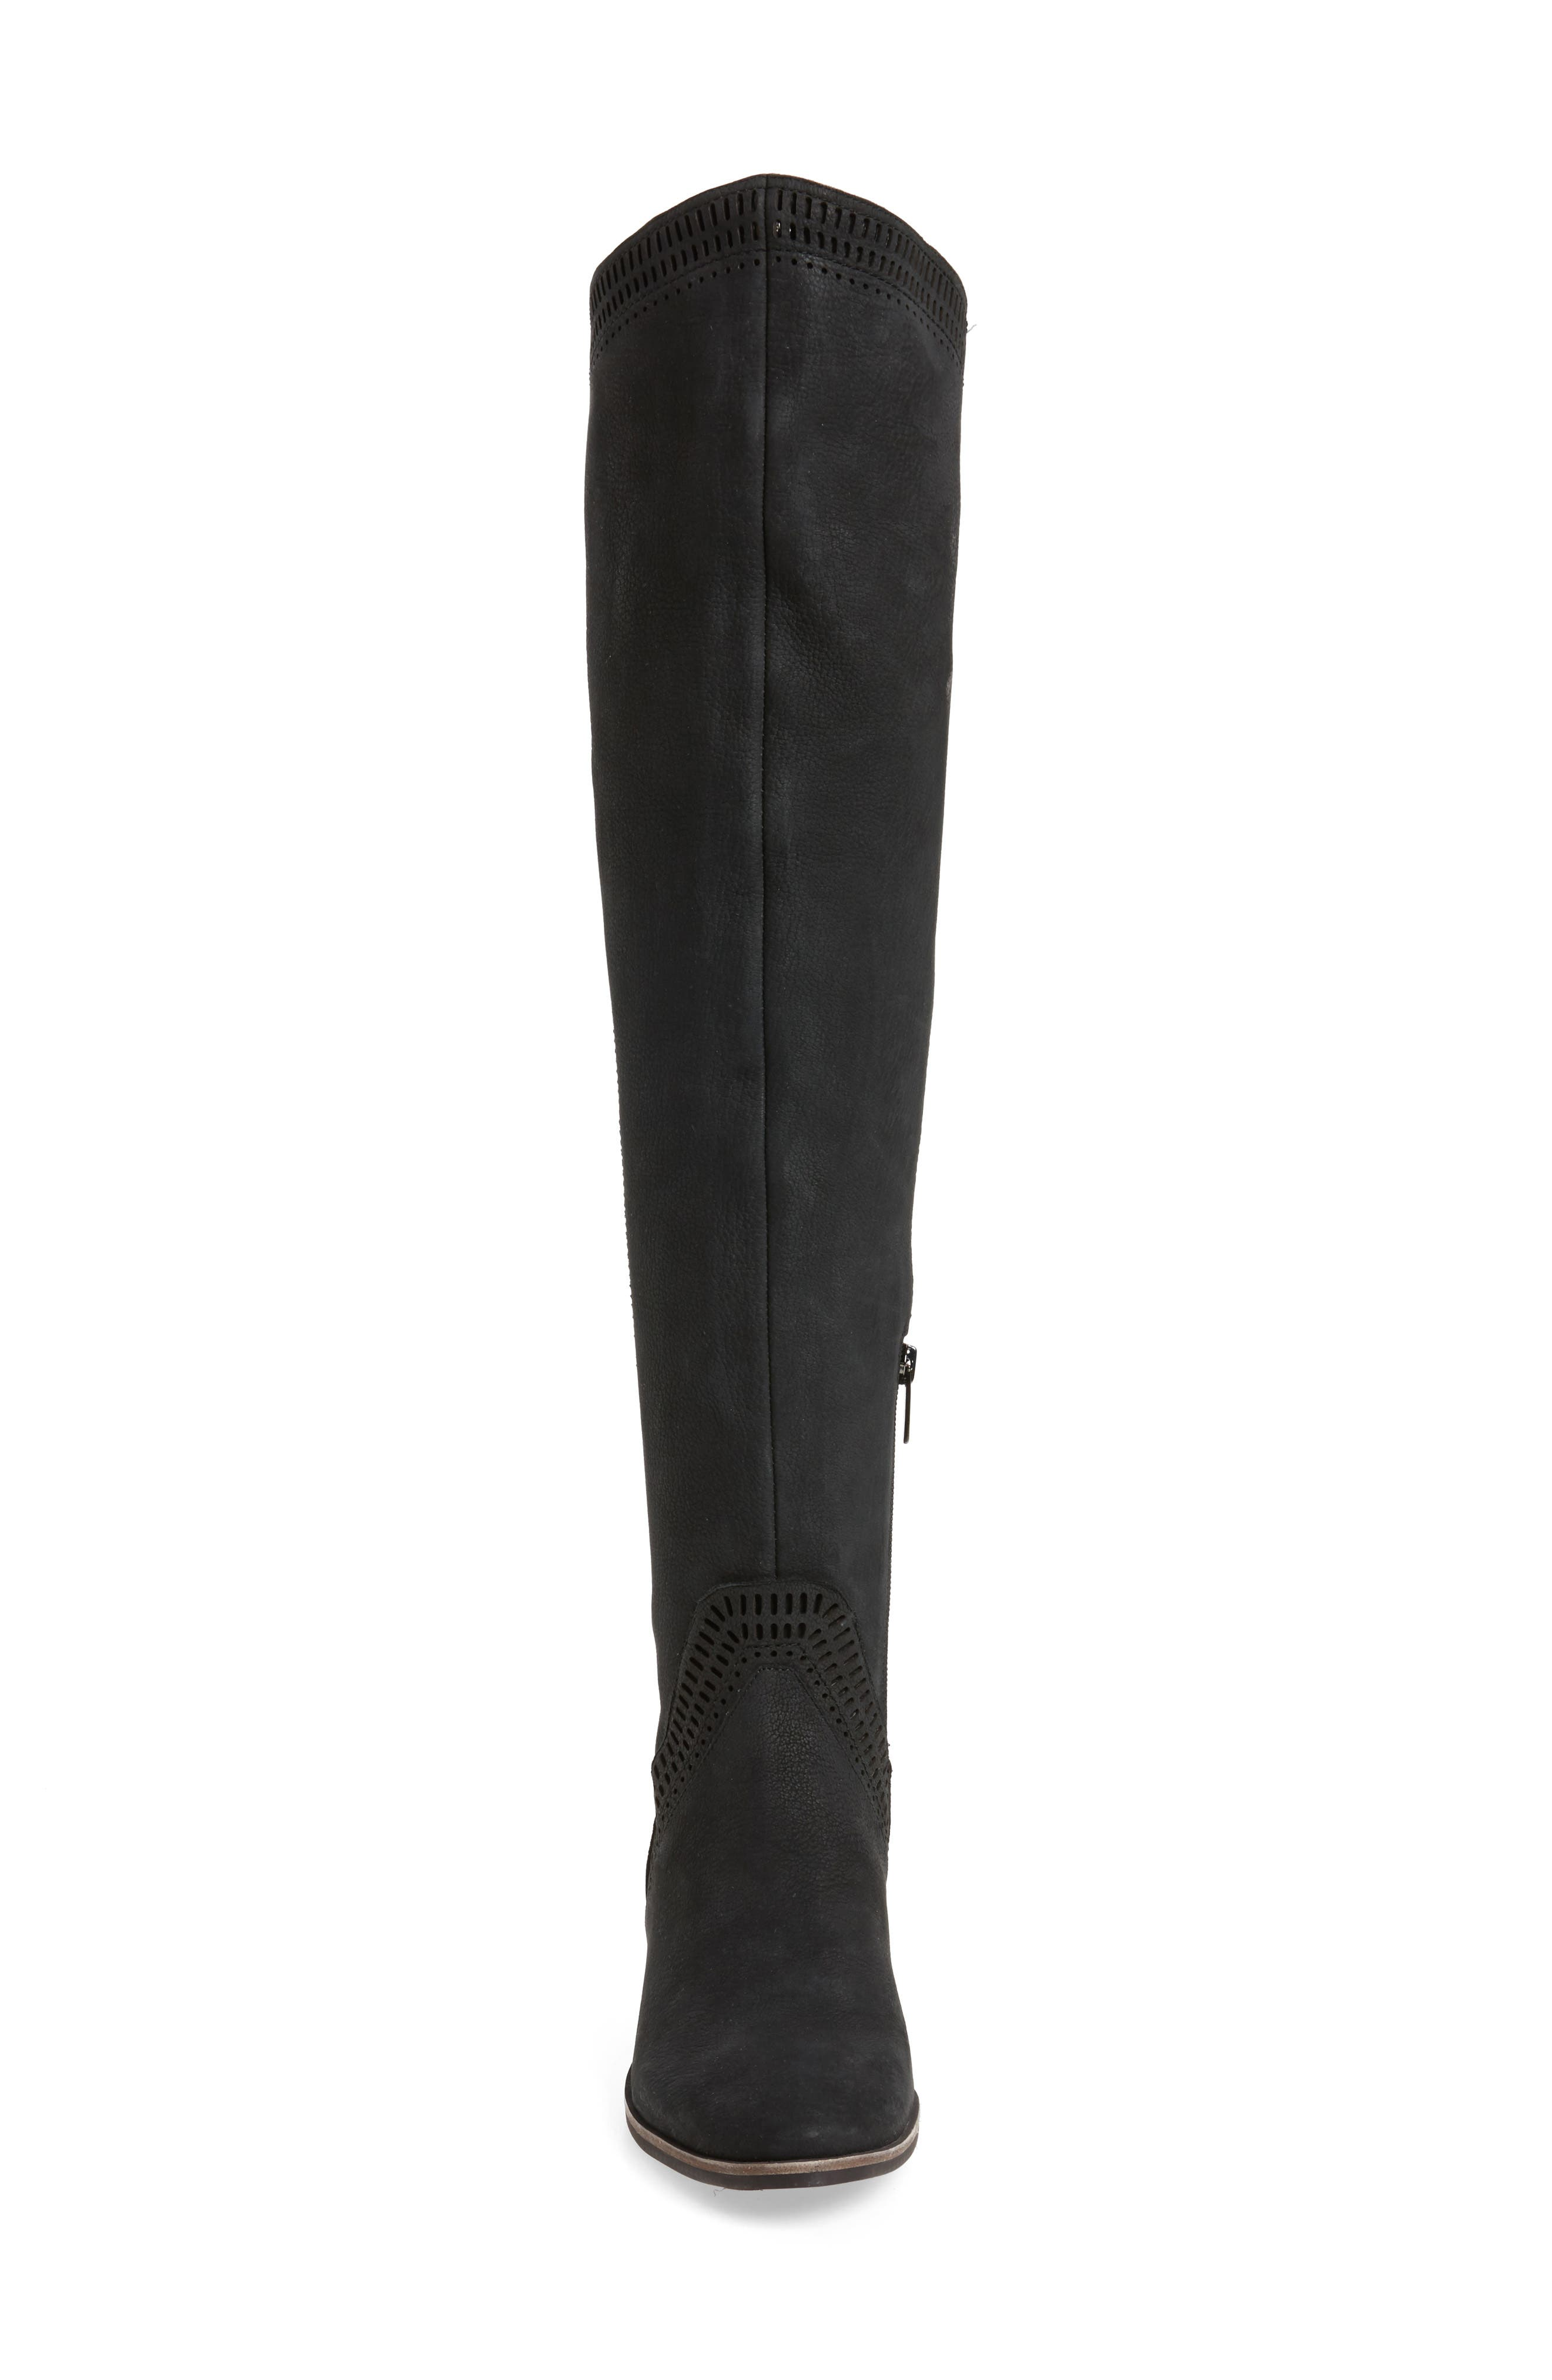 Karinda Over the Knee Boot,                             Alternate thumbnail 4, color,                             Black Leather Wide Calf